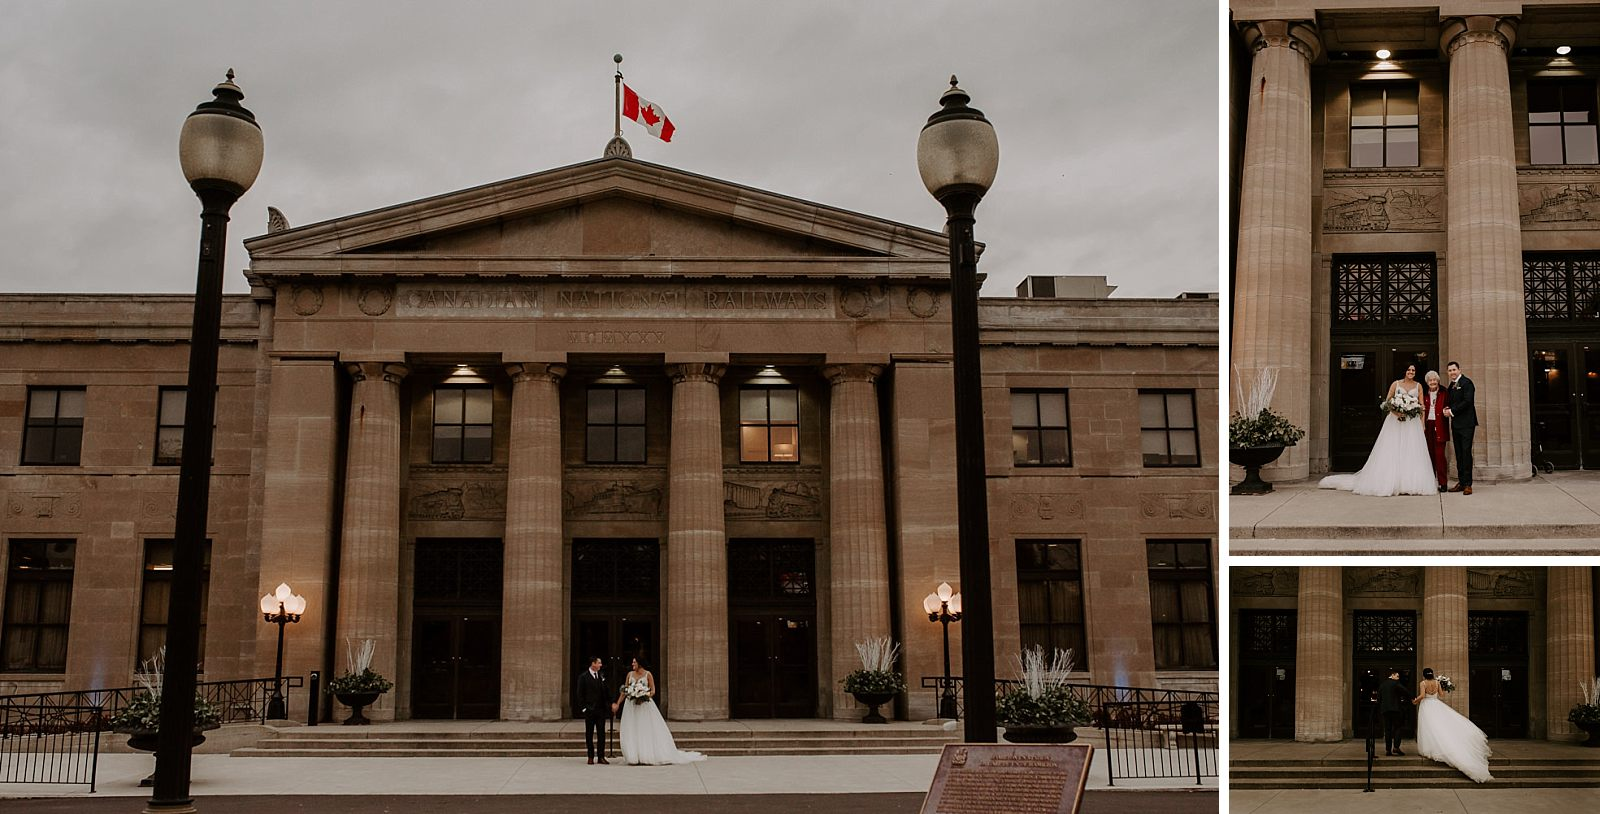 bride and groom get married at unique venue: Canadian National Railway